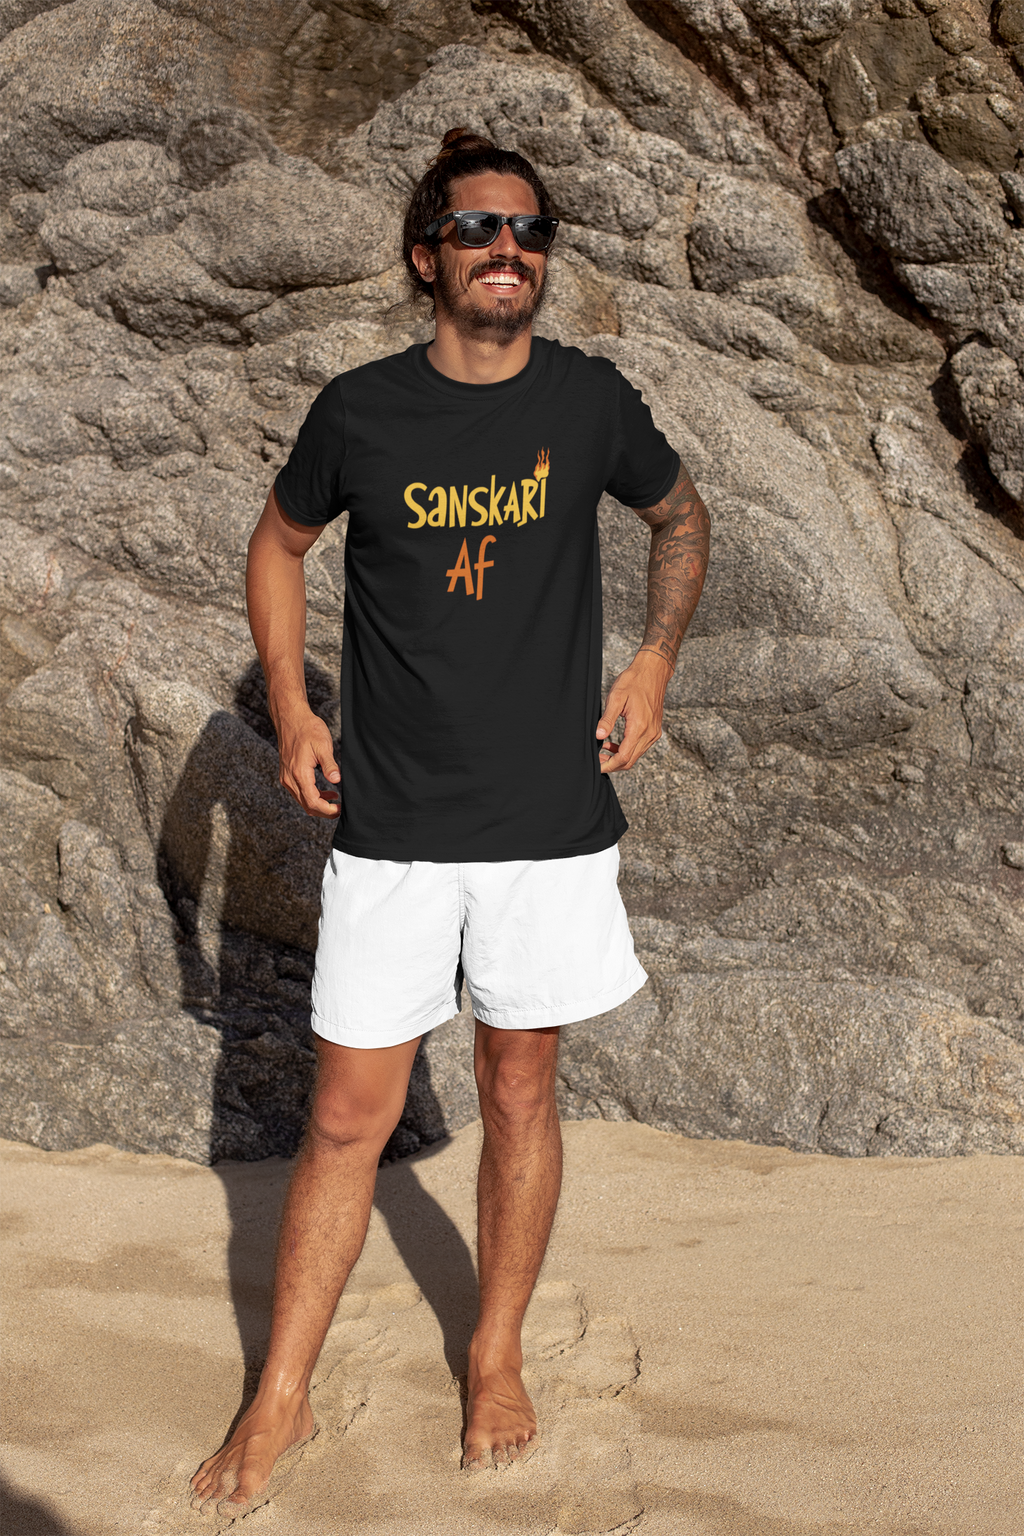 Sanskari AF- T-SHIRTS FOR MEN - SuprCrowd